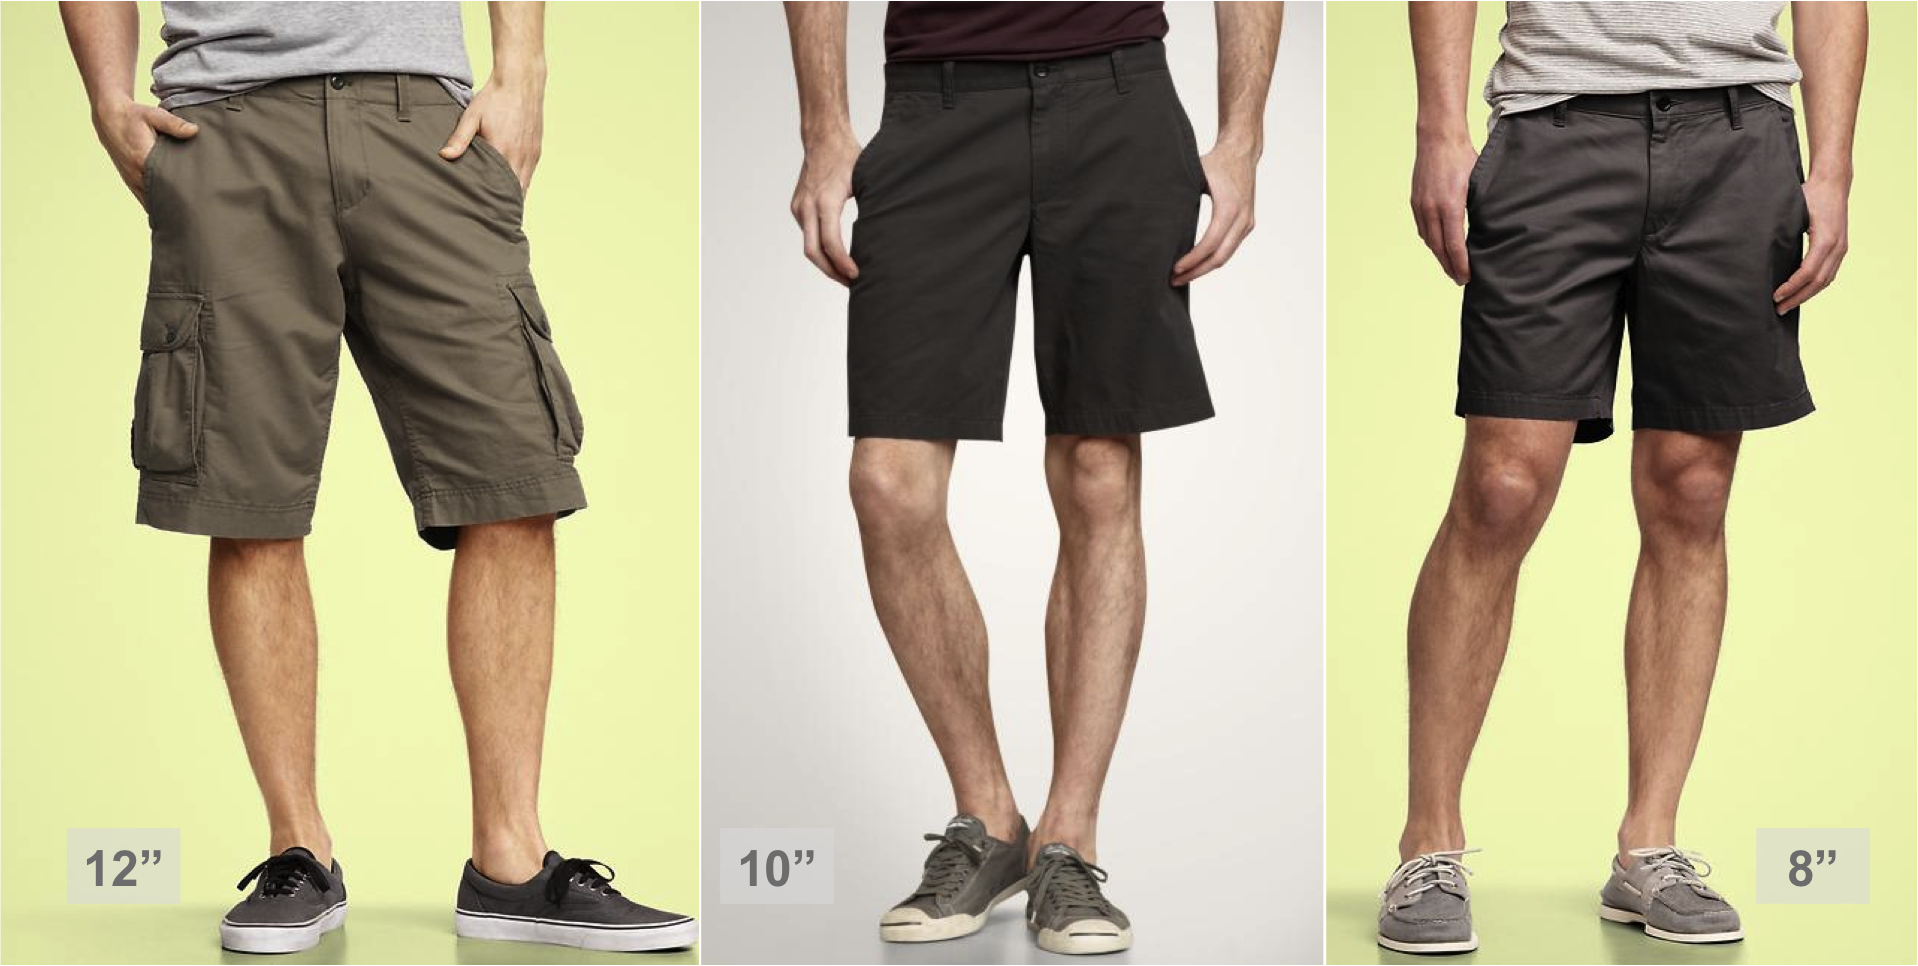 For Men Wearing The Right Pants Shorts Information Nigeria